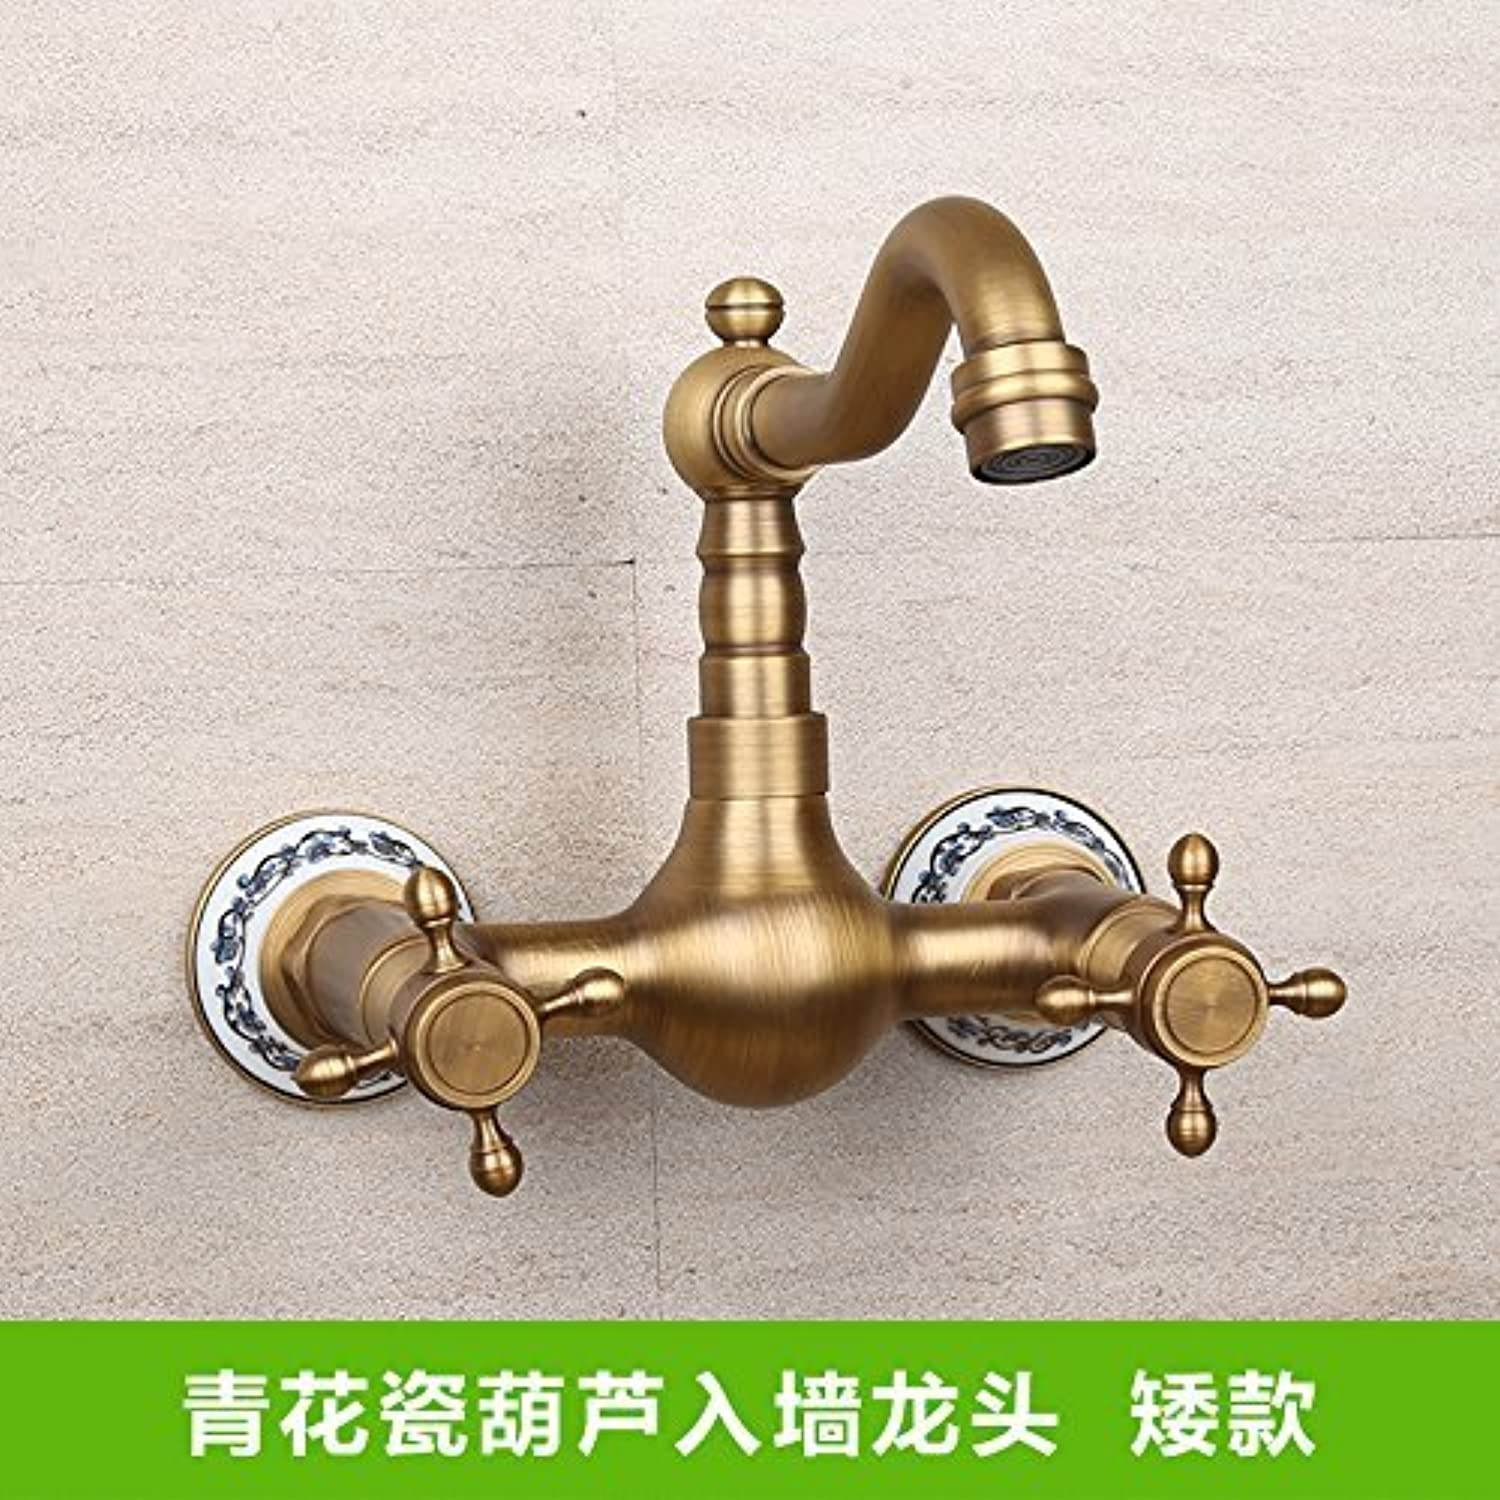 Oudan Antique Sink Mixer Tap Bathroom Wall-Mounted Hot and Cold and Double-Hole Lowe